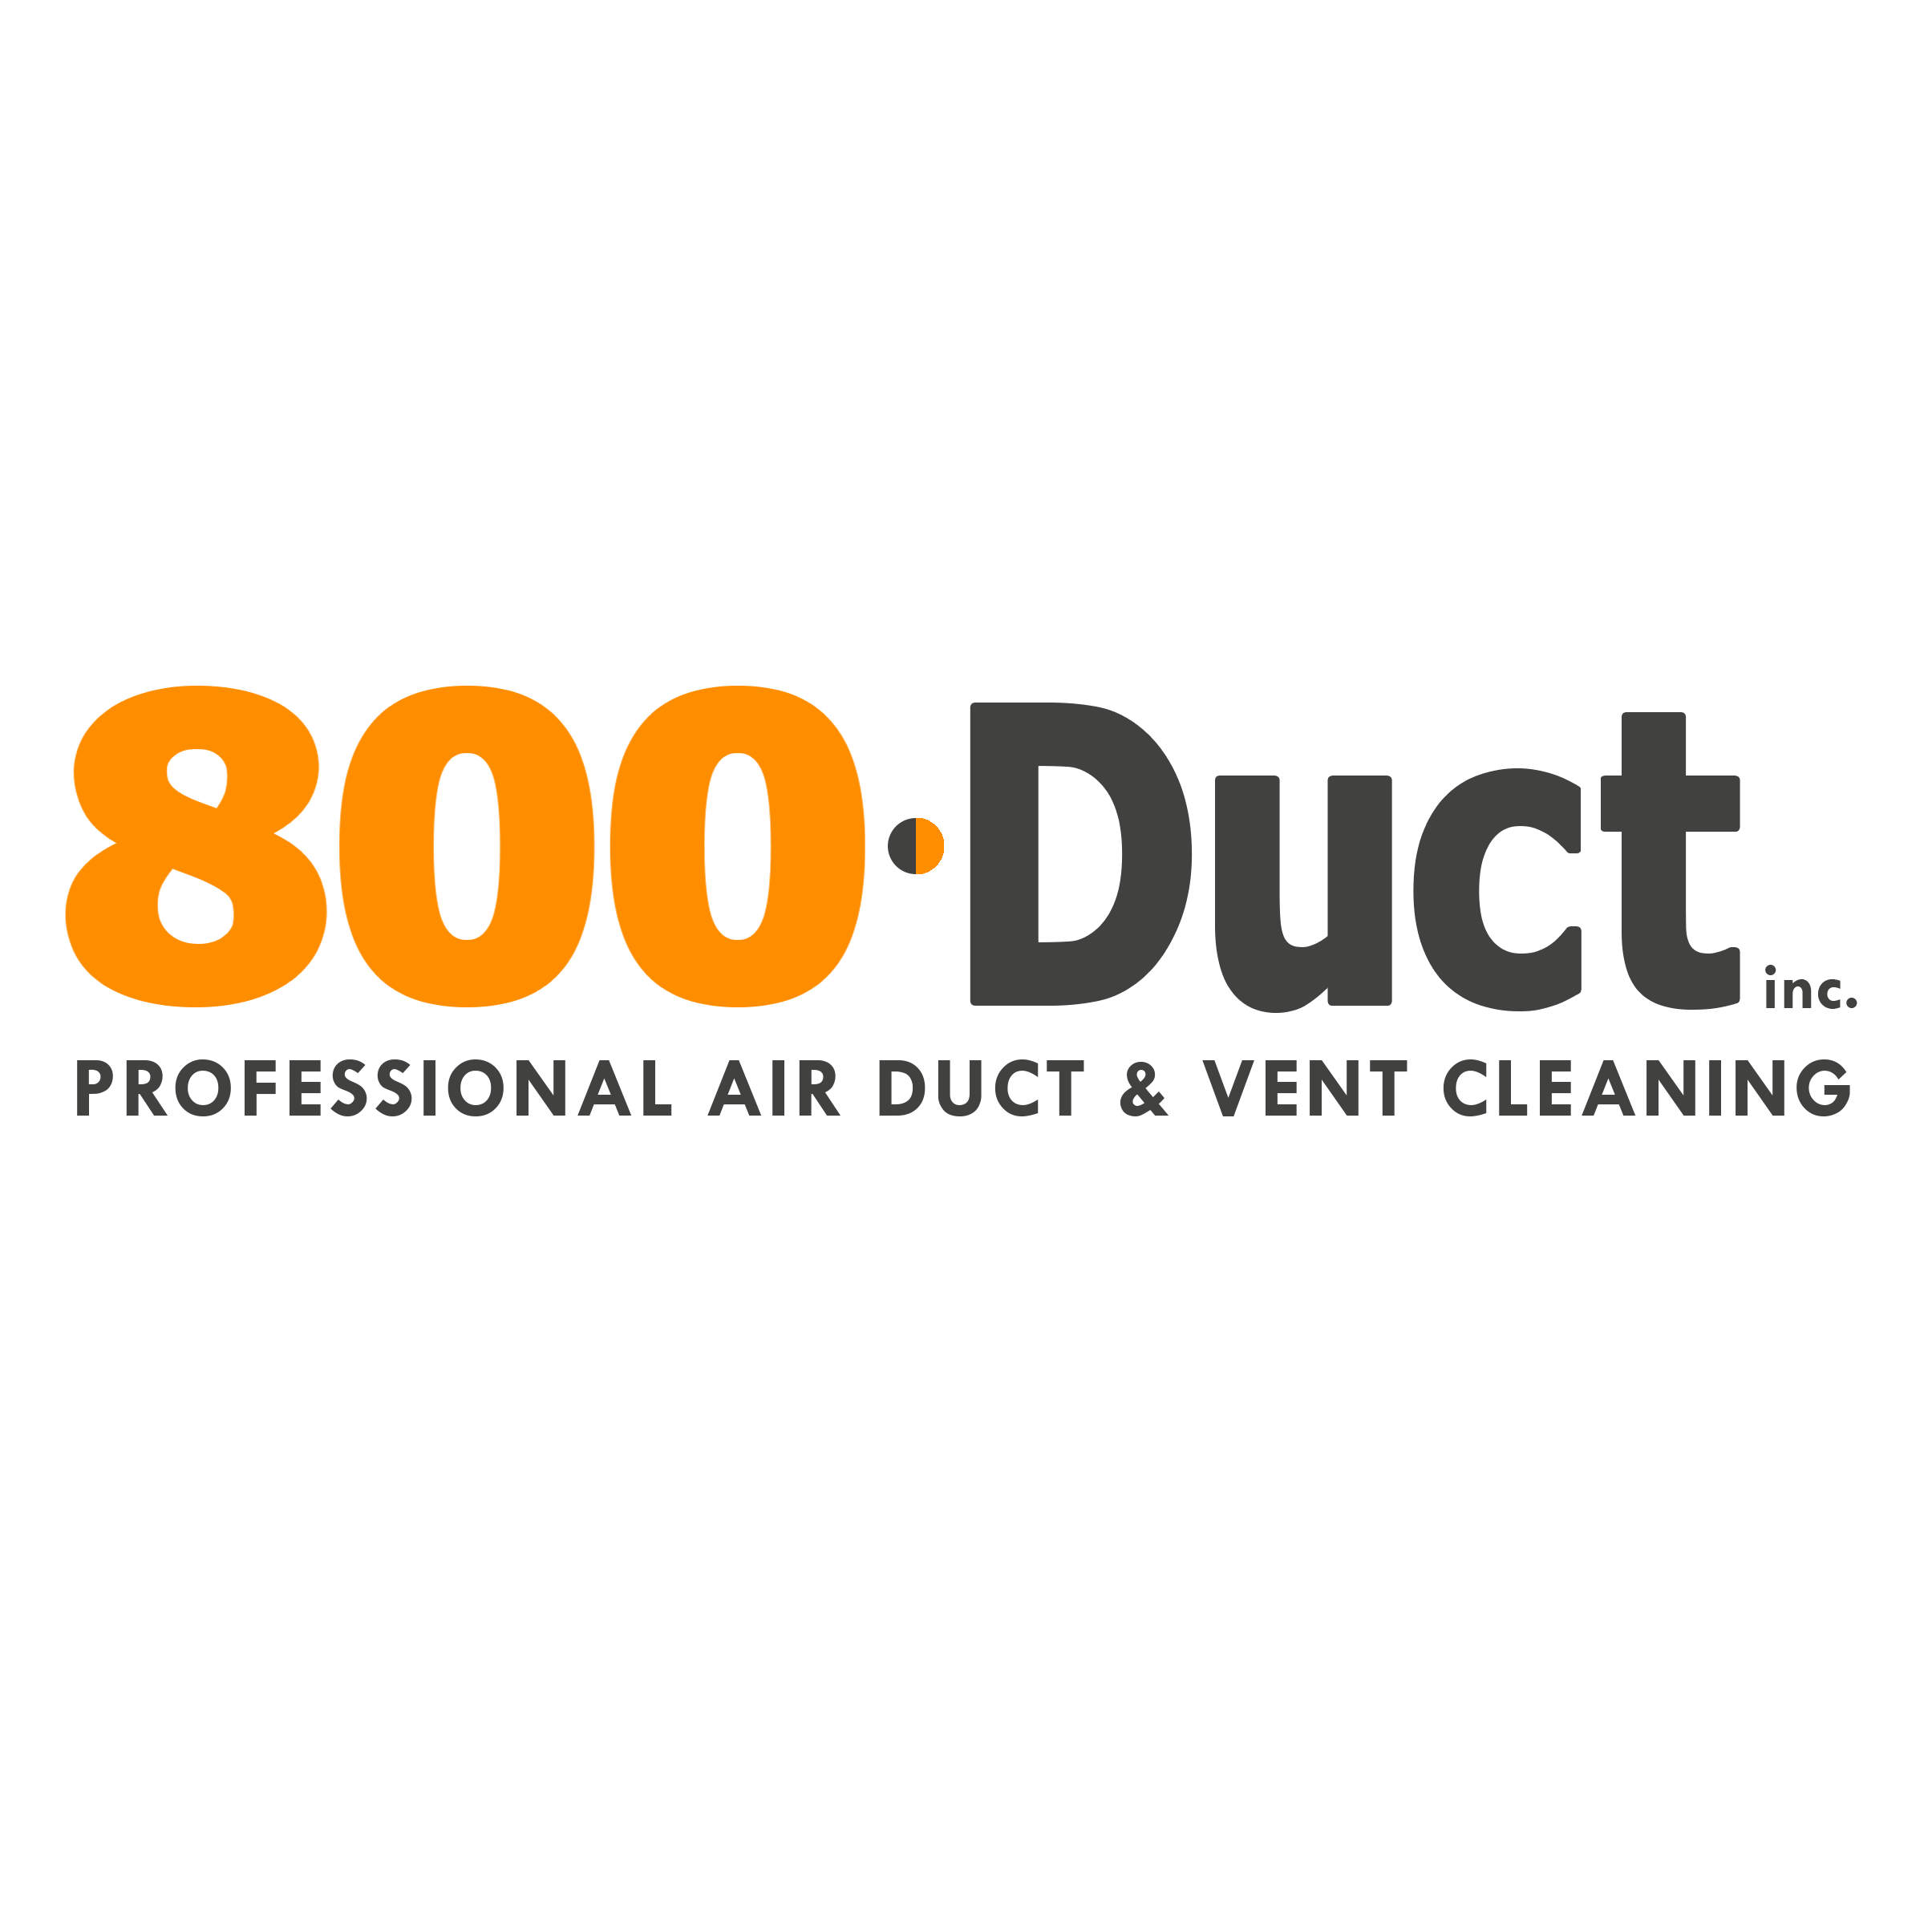 800-Duct: Professional Air Duct & Vent Cleaning